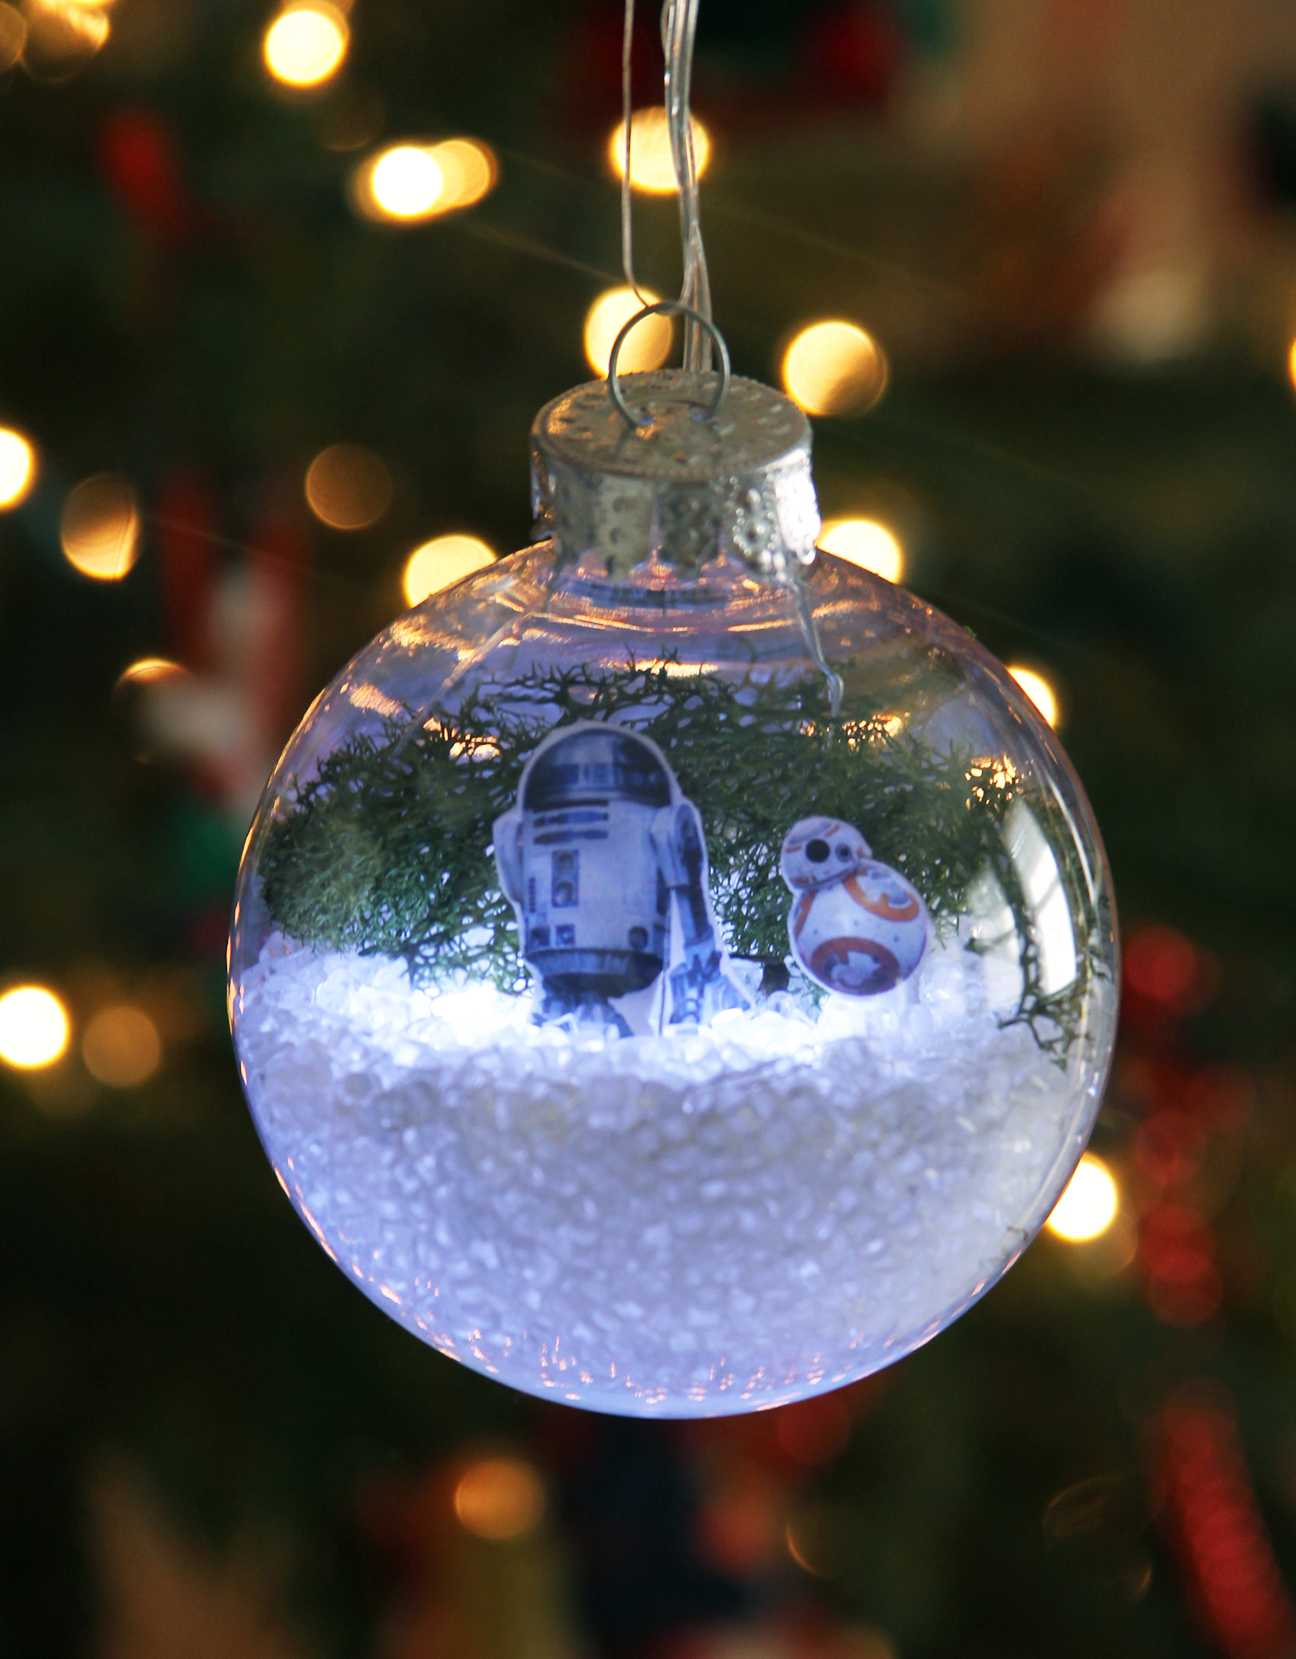 DIY Star Wars Glowing Snow Globe Holiday Ornament ...